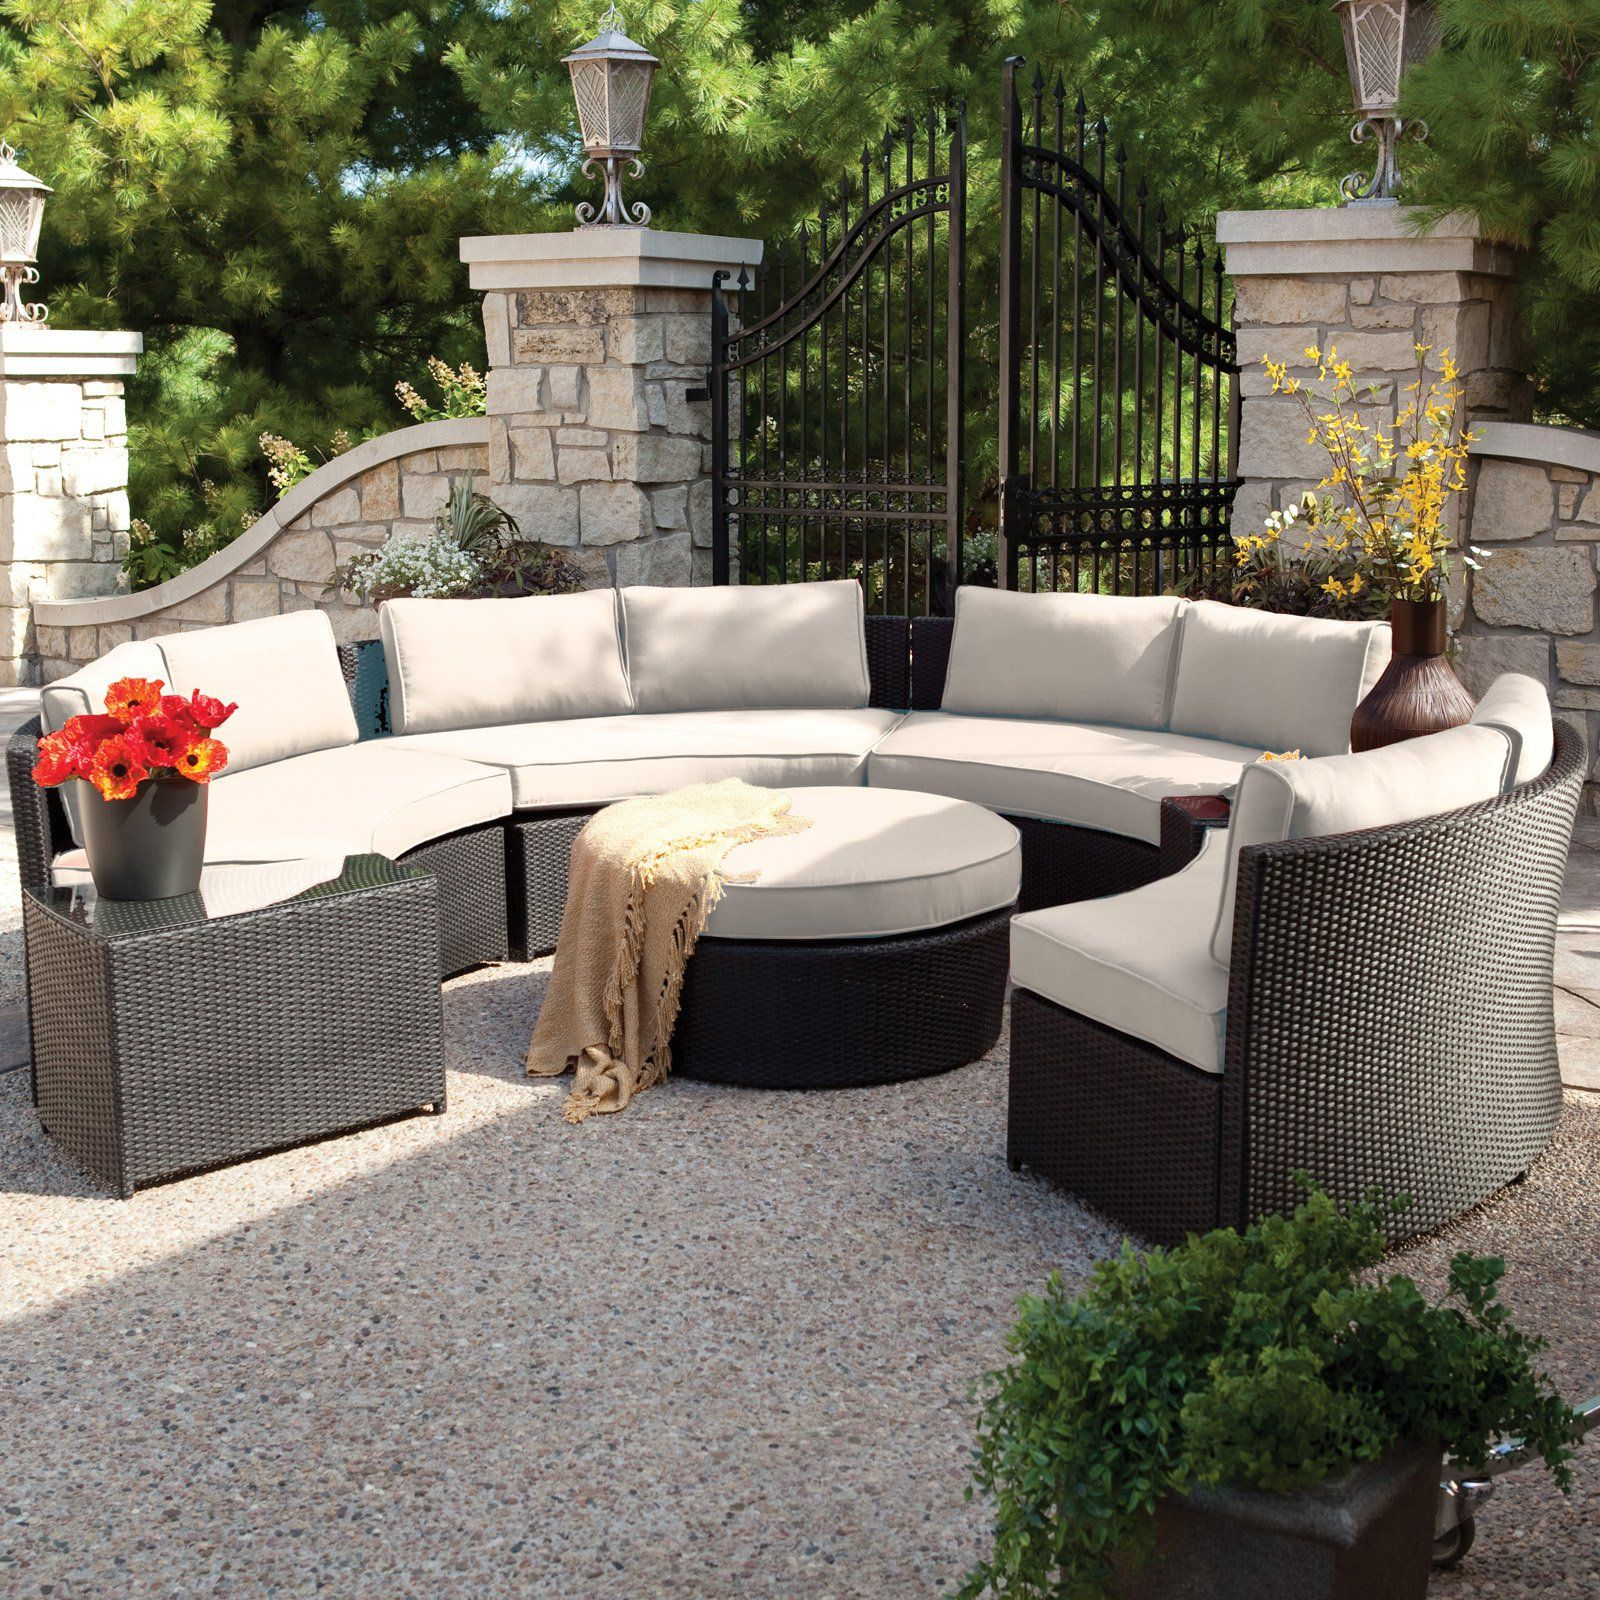 Outdoor Patio Furniture Sets For Relaxing In 2020 Outdoor Patio